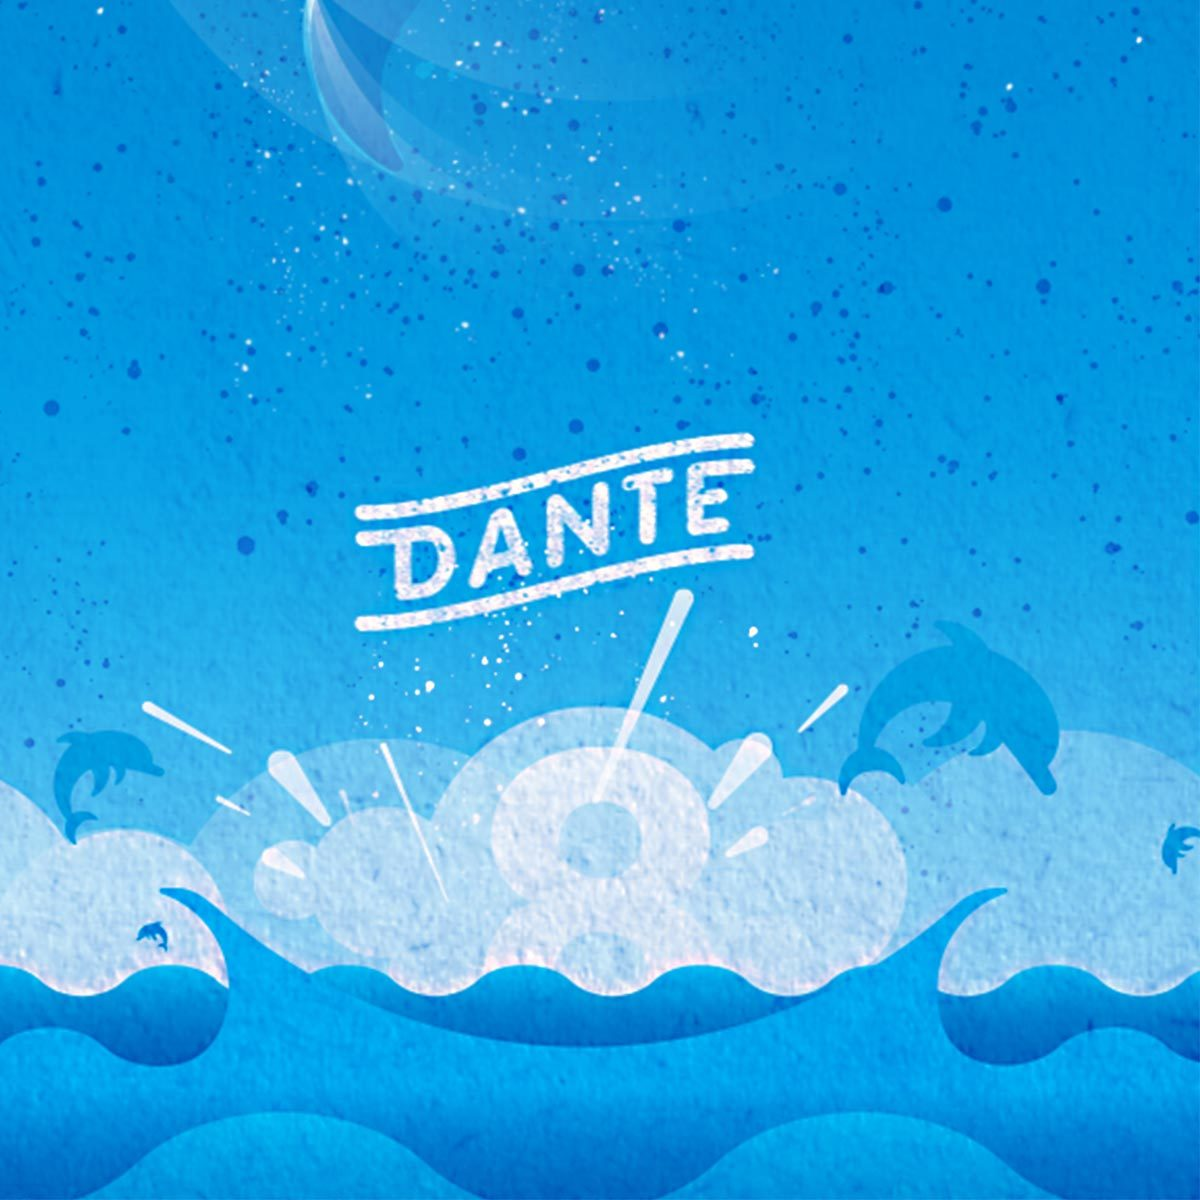 Dante Delphin Illustration 0 MHG Bern